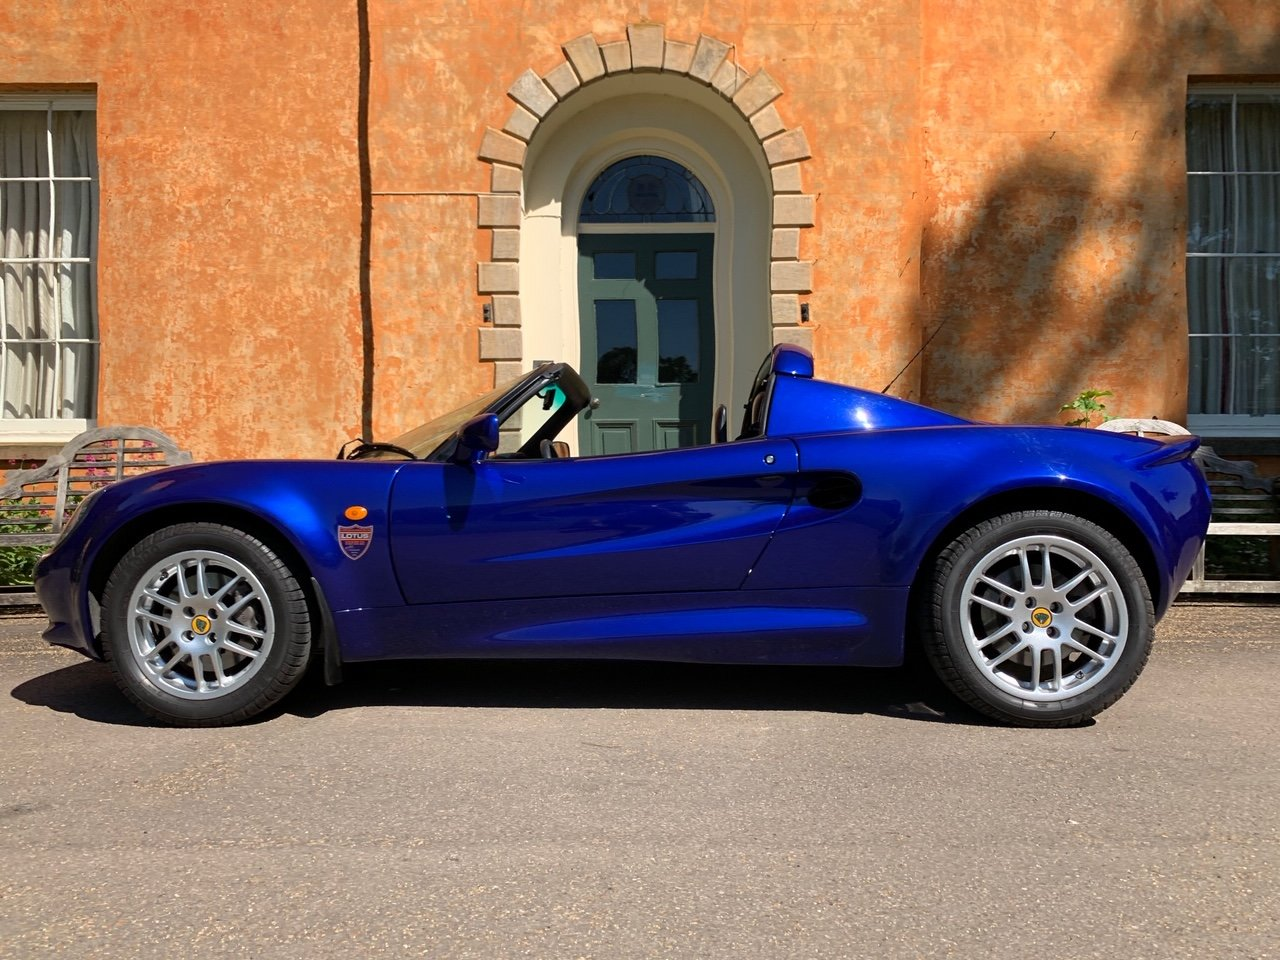 2000 Lotus Elise S1 - ONLY 17,900 Miles *** NOW SOLD *** For Sale (picture 1 of 6)